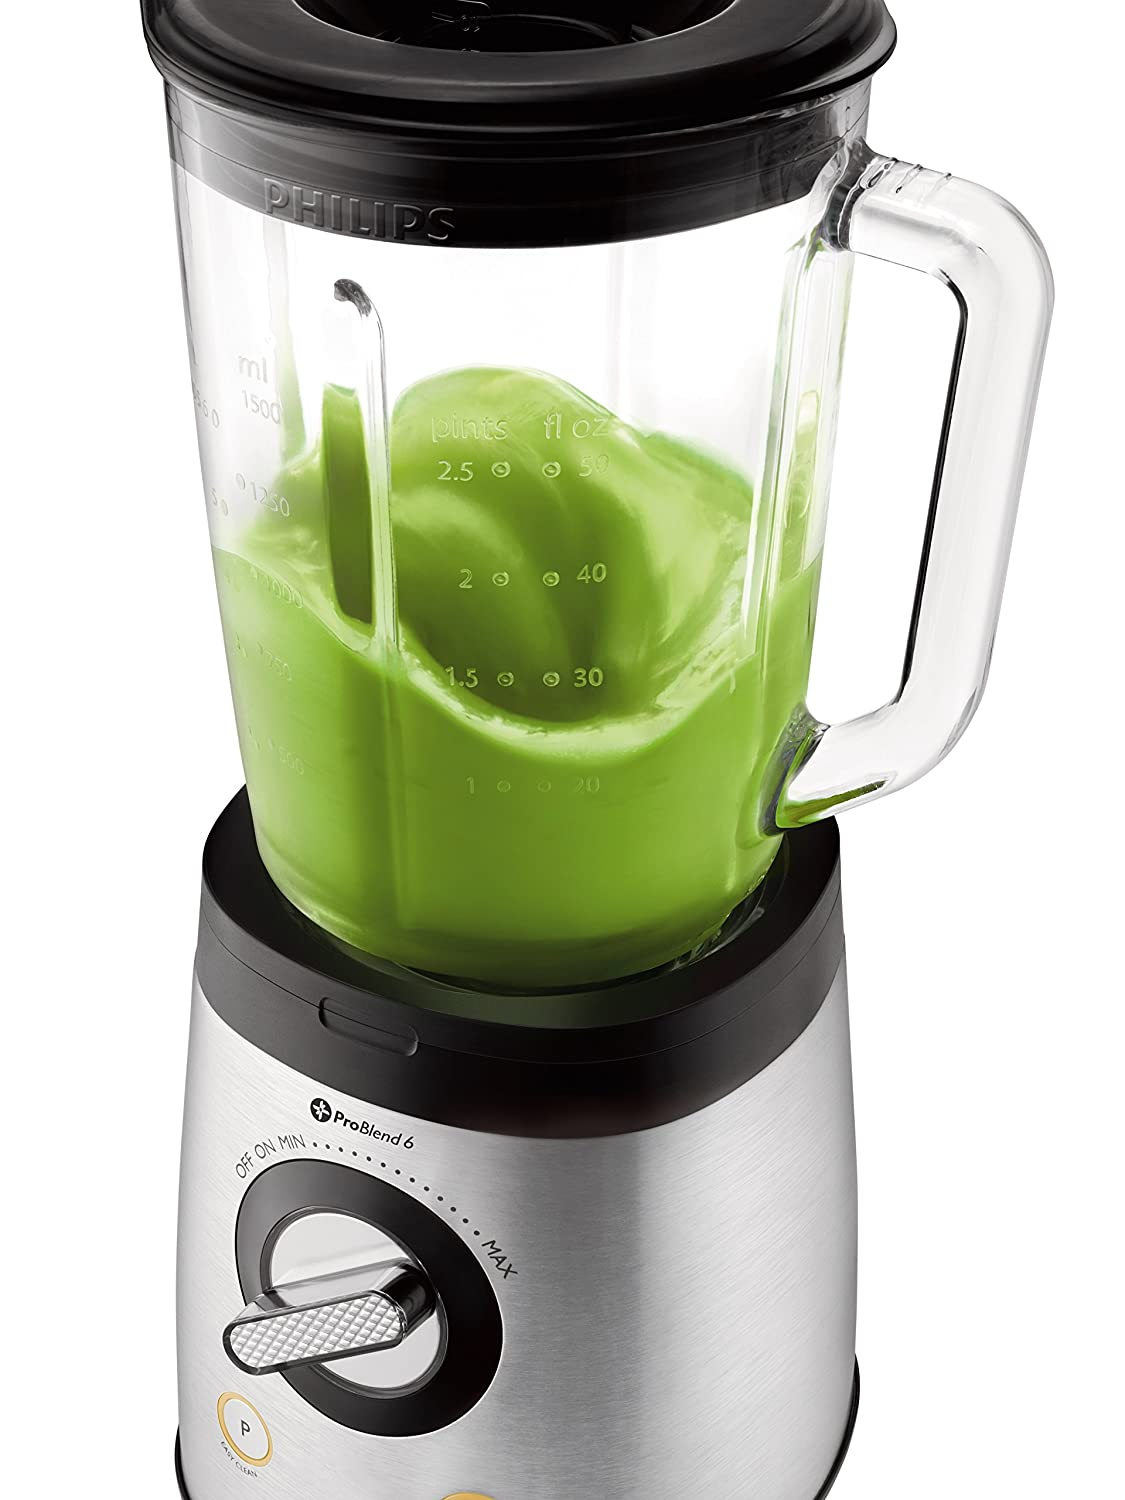 Amazon.com: Philips Avance Collection 800W Blender - HR2096/01: Kitchen & Dining